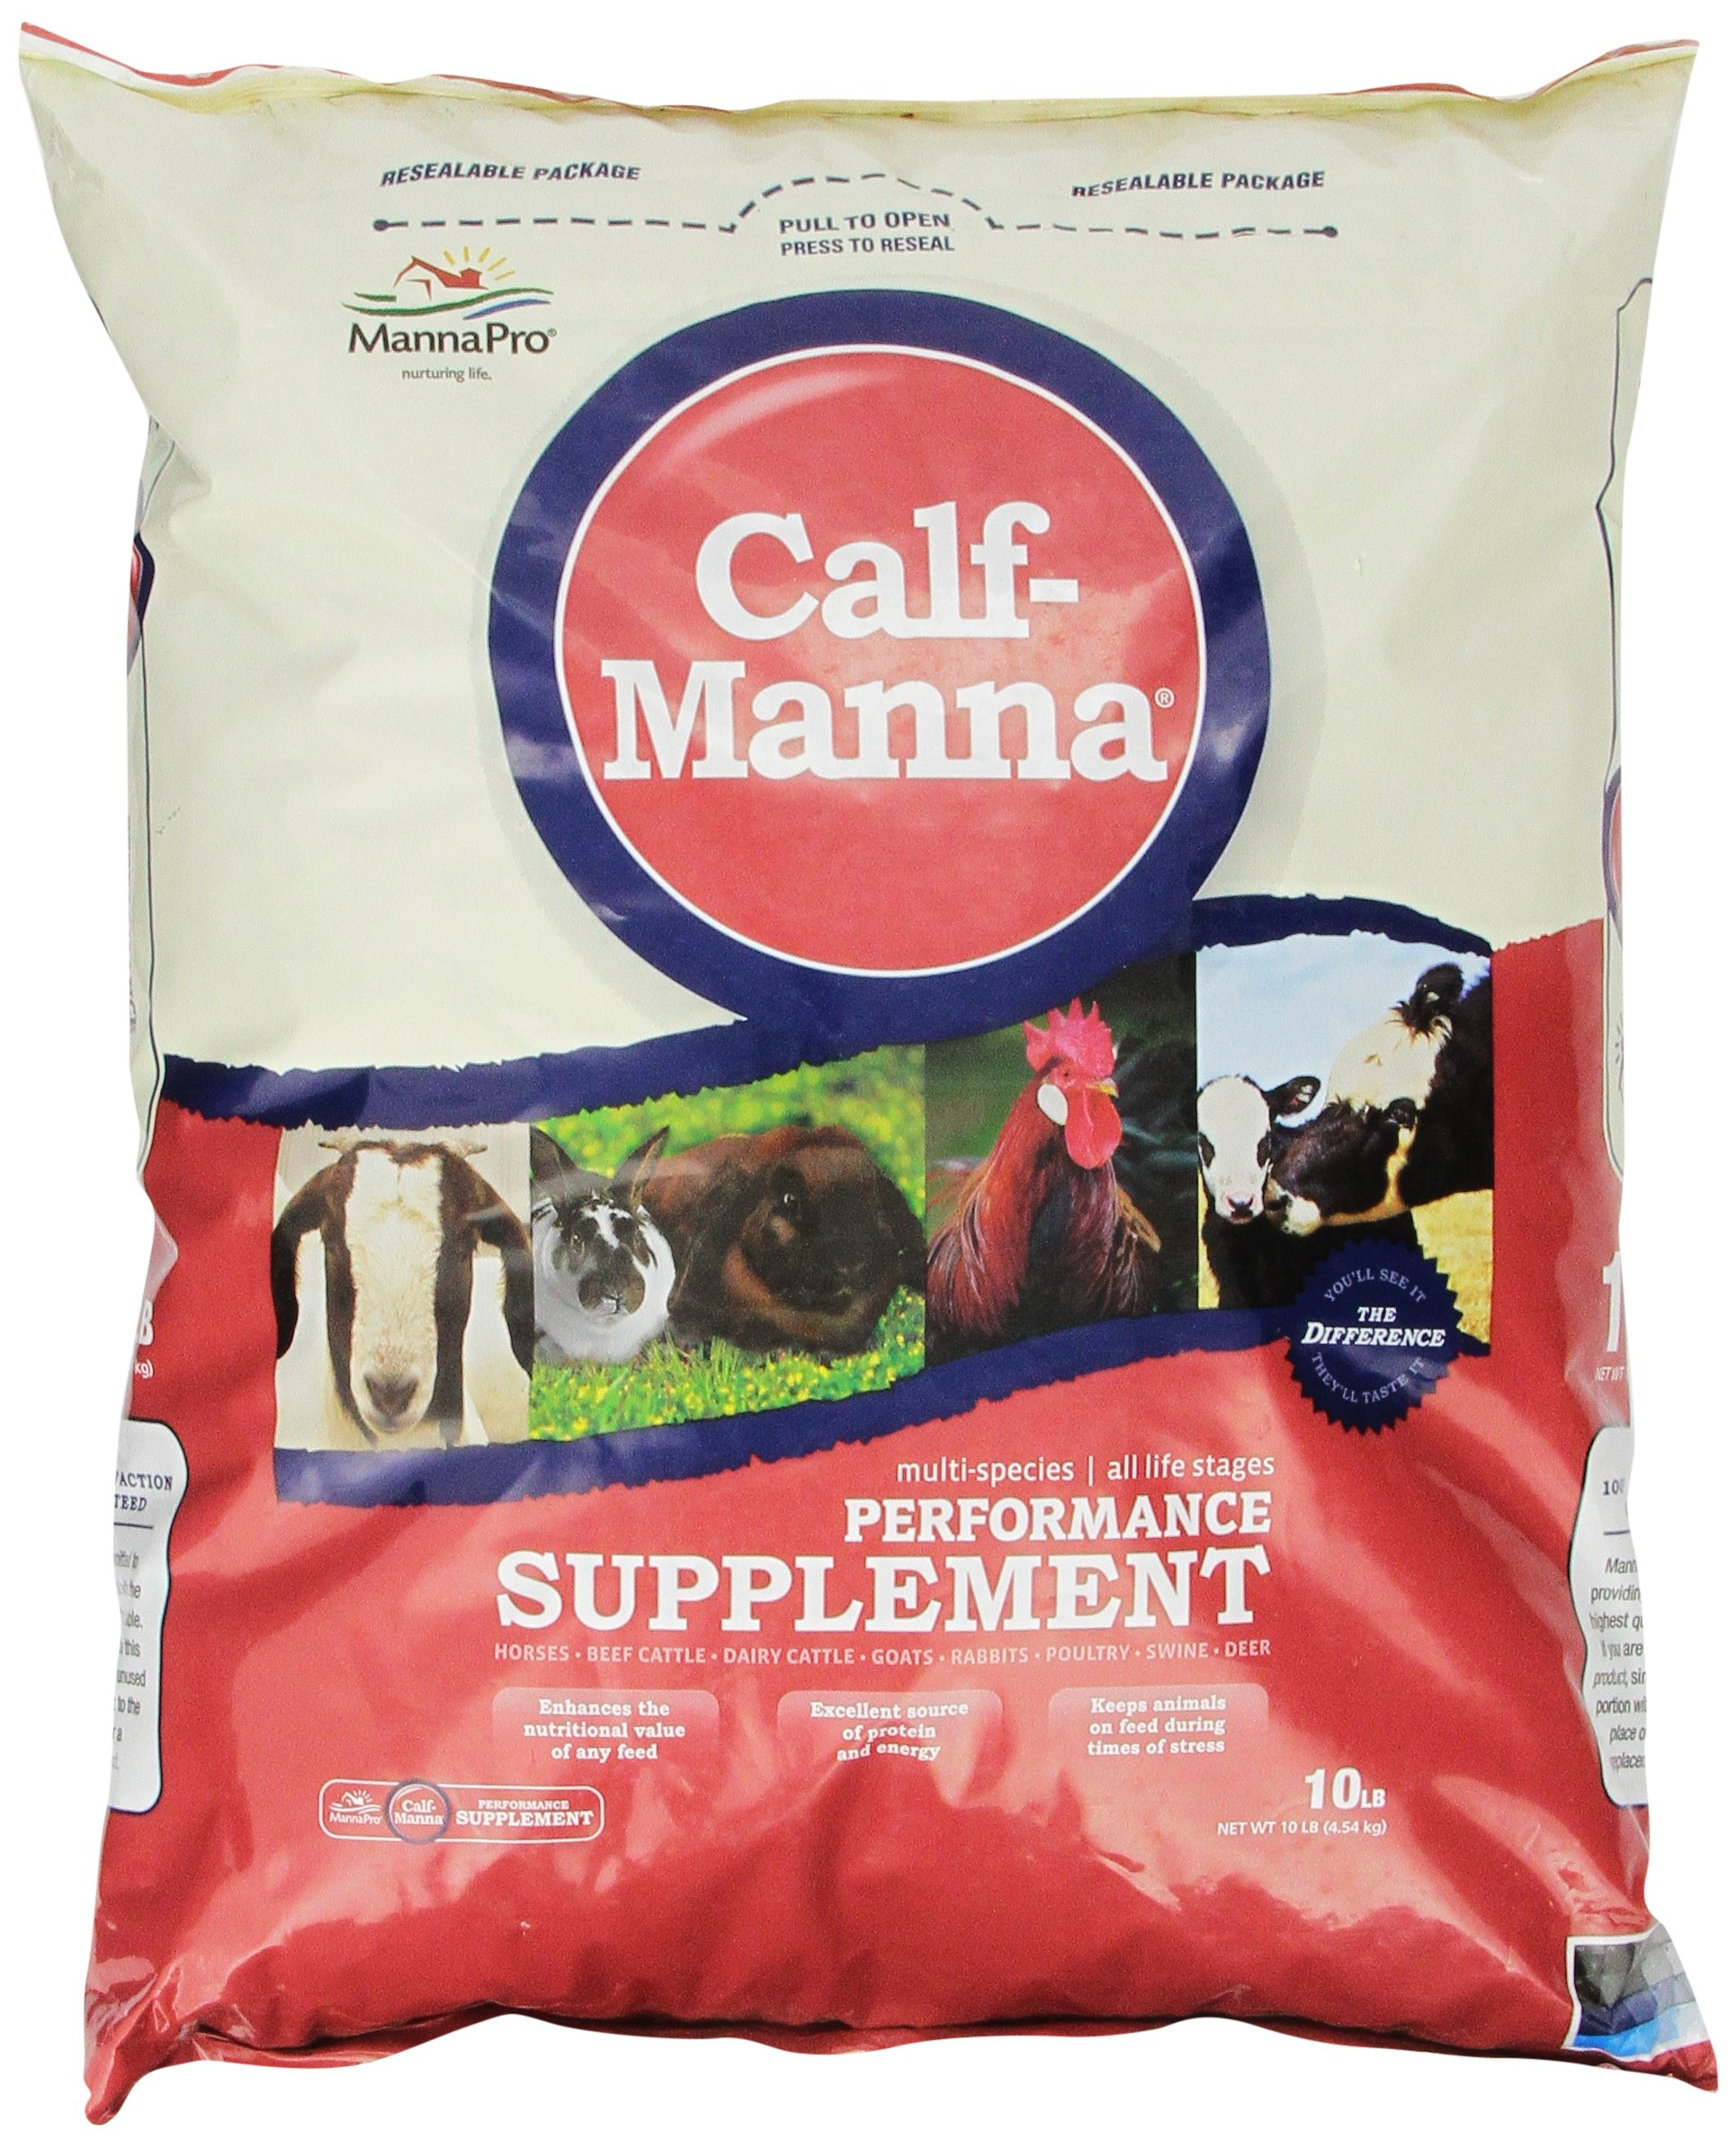 Manna Pro 0093982232 Calf-Manna Ultimate Multi-Species Performance for Animals, 10-Pound by Manna Pro